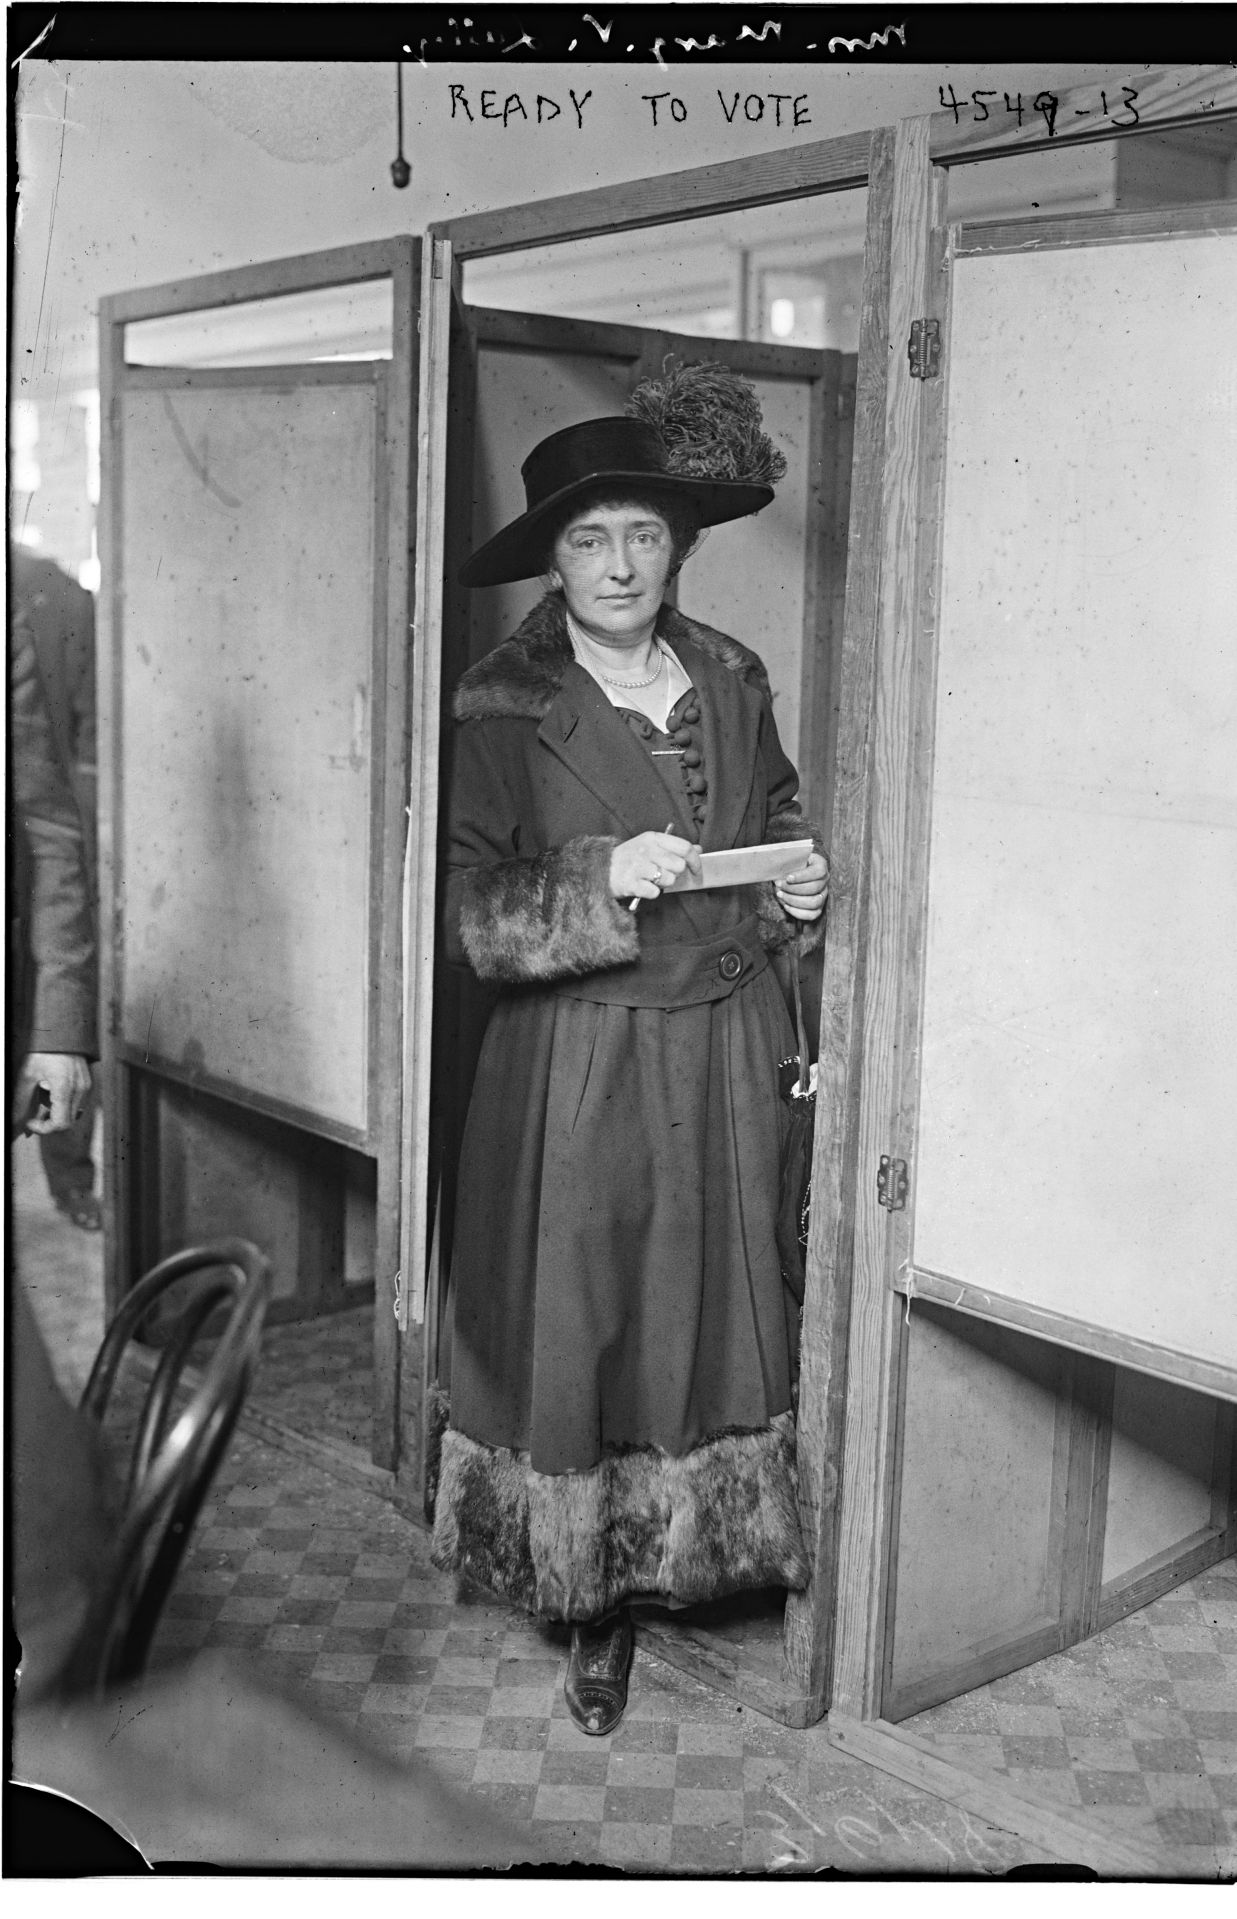 Photograph shows Margaret V. Lally at the door of a voting booth during the first election where women could vote, New York City. (Source: Flickr Commons project, 2016)  Bain News Service, Publisher. Ready to Vote. , 1918. [March 5] Photograph. https://www.loc.gov/item/2014706759/.